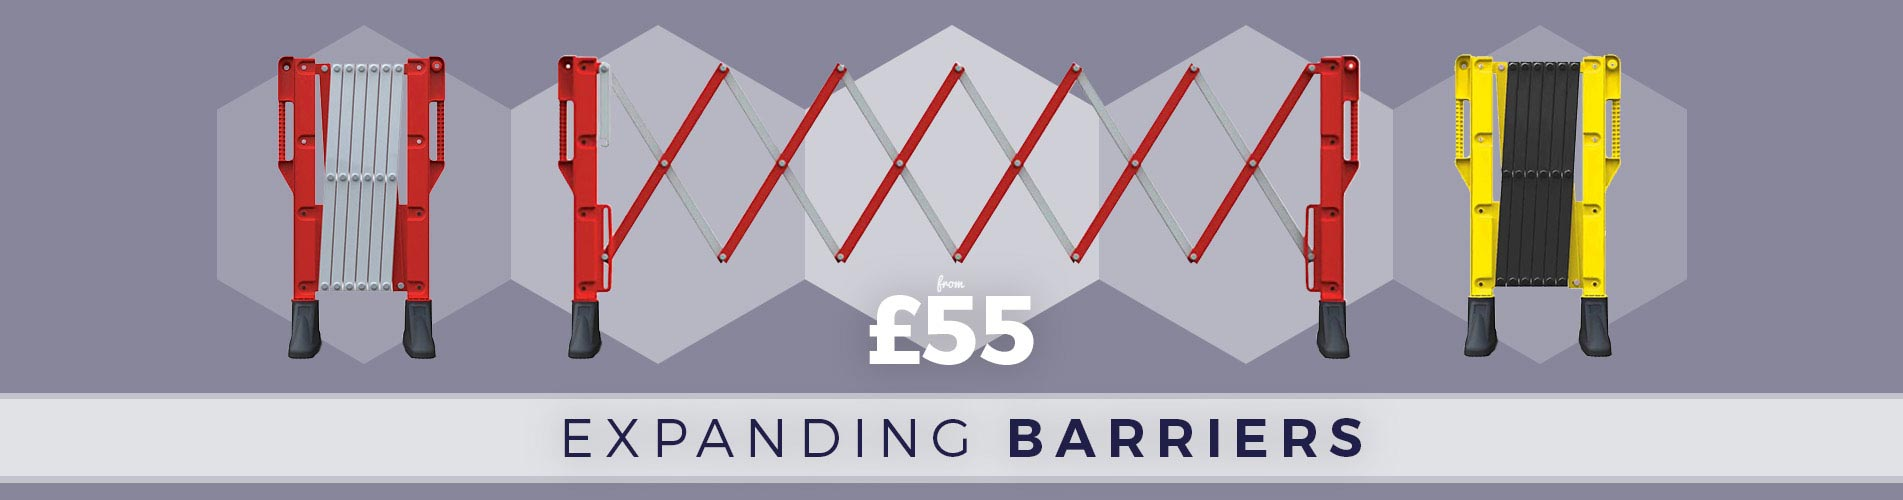 Shop quality Expanding Barriers available with Next Day Delivery